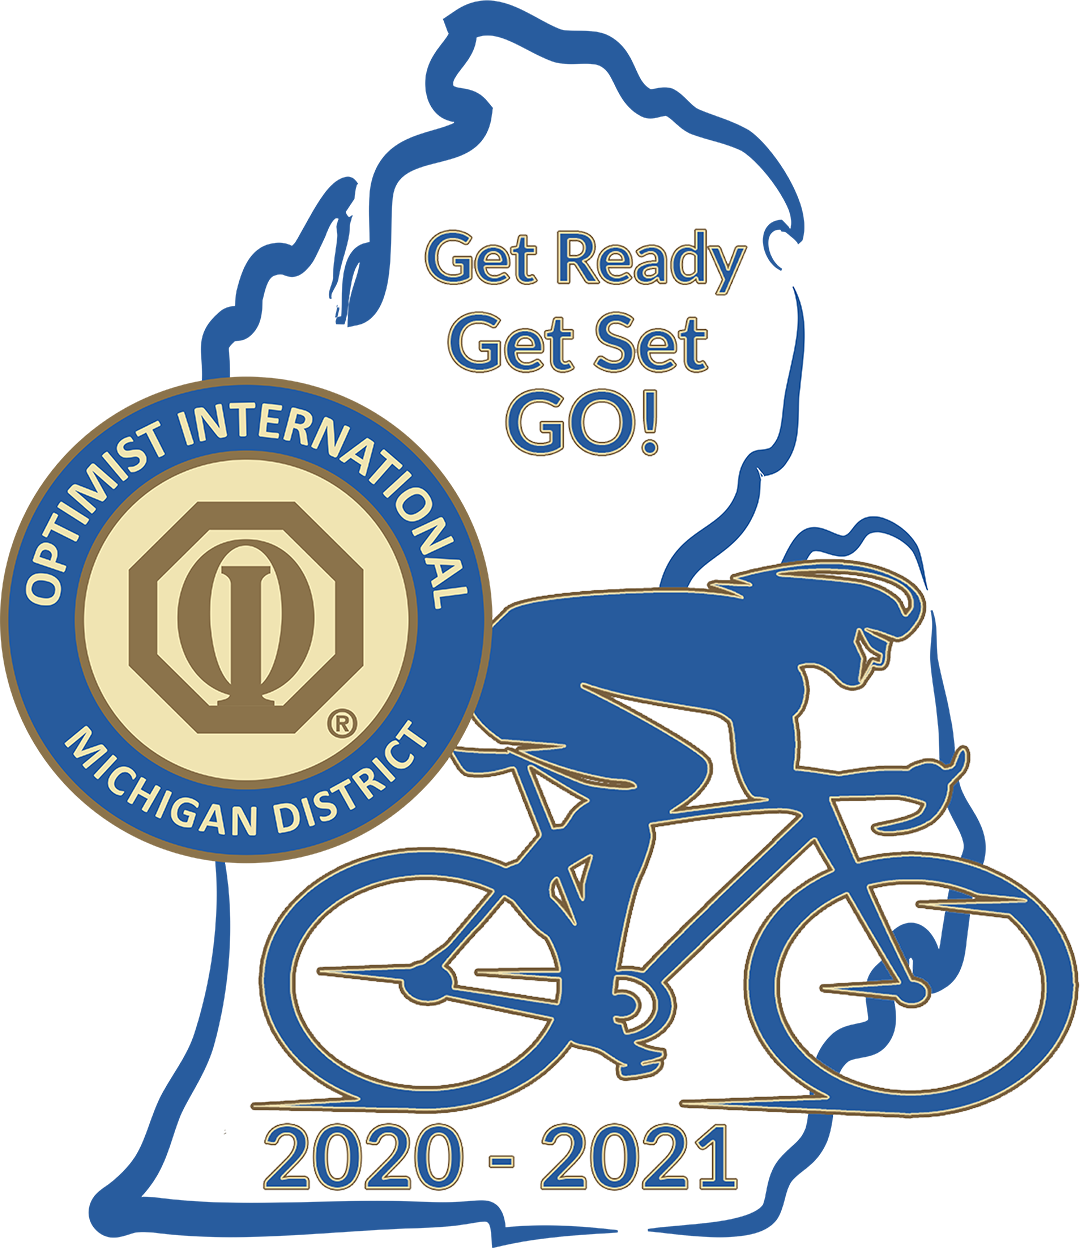 Optimist International Michigan District 20-21 Slogan